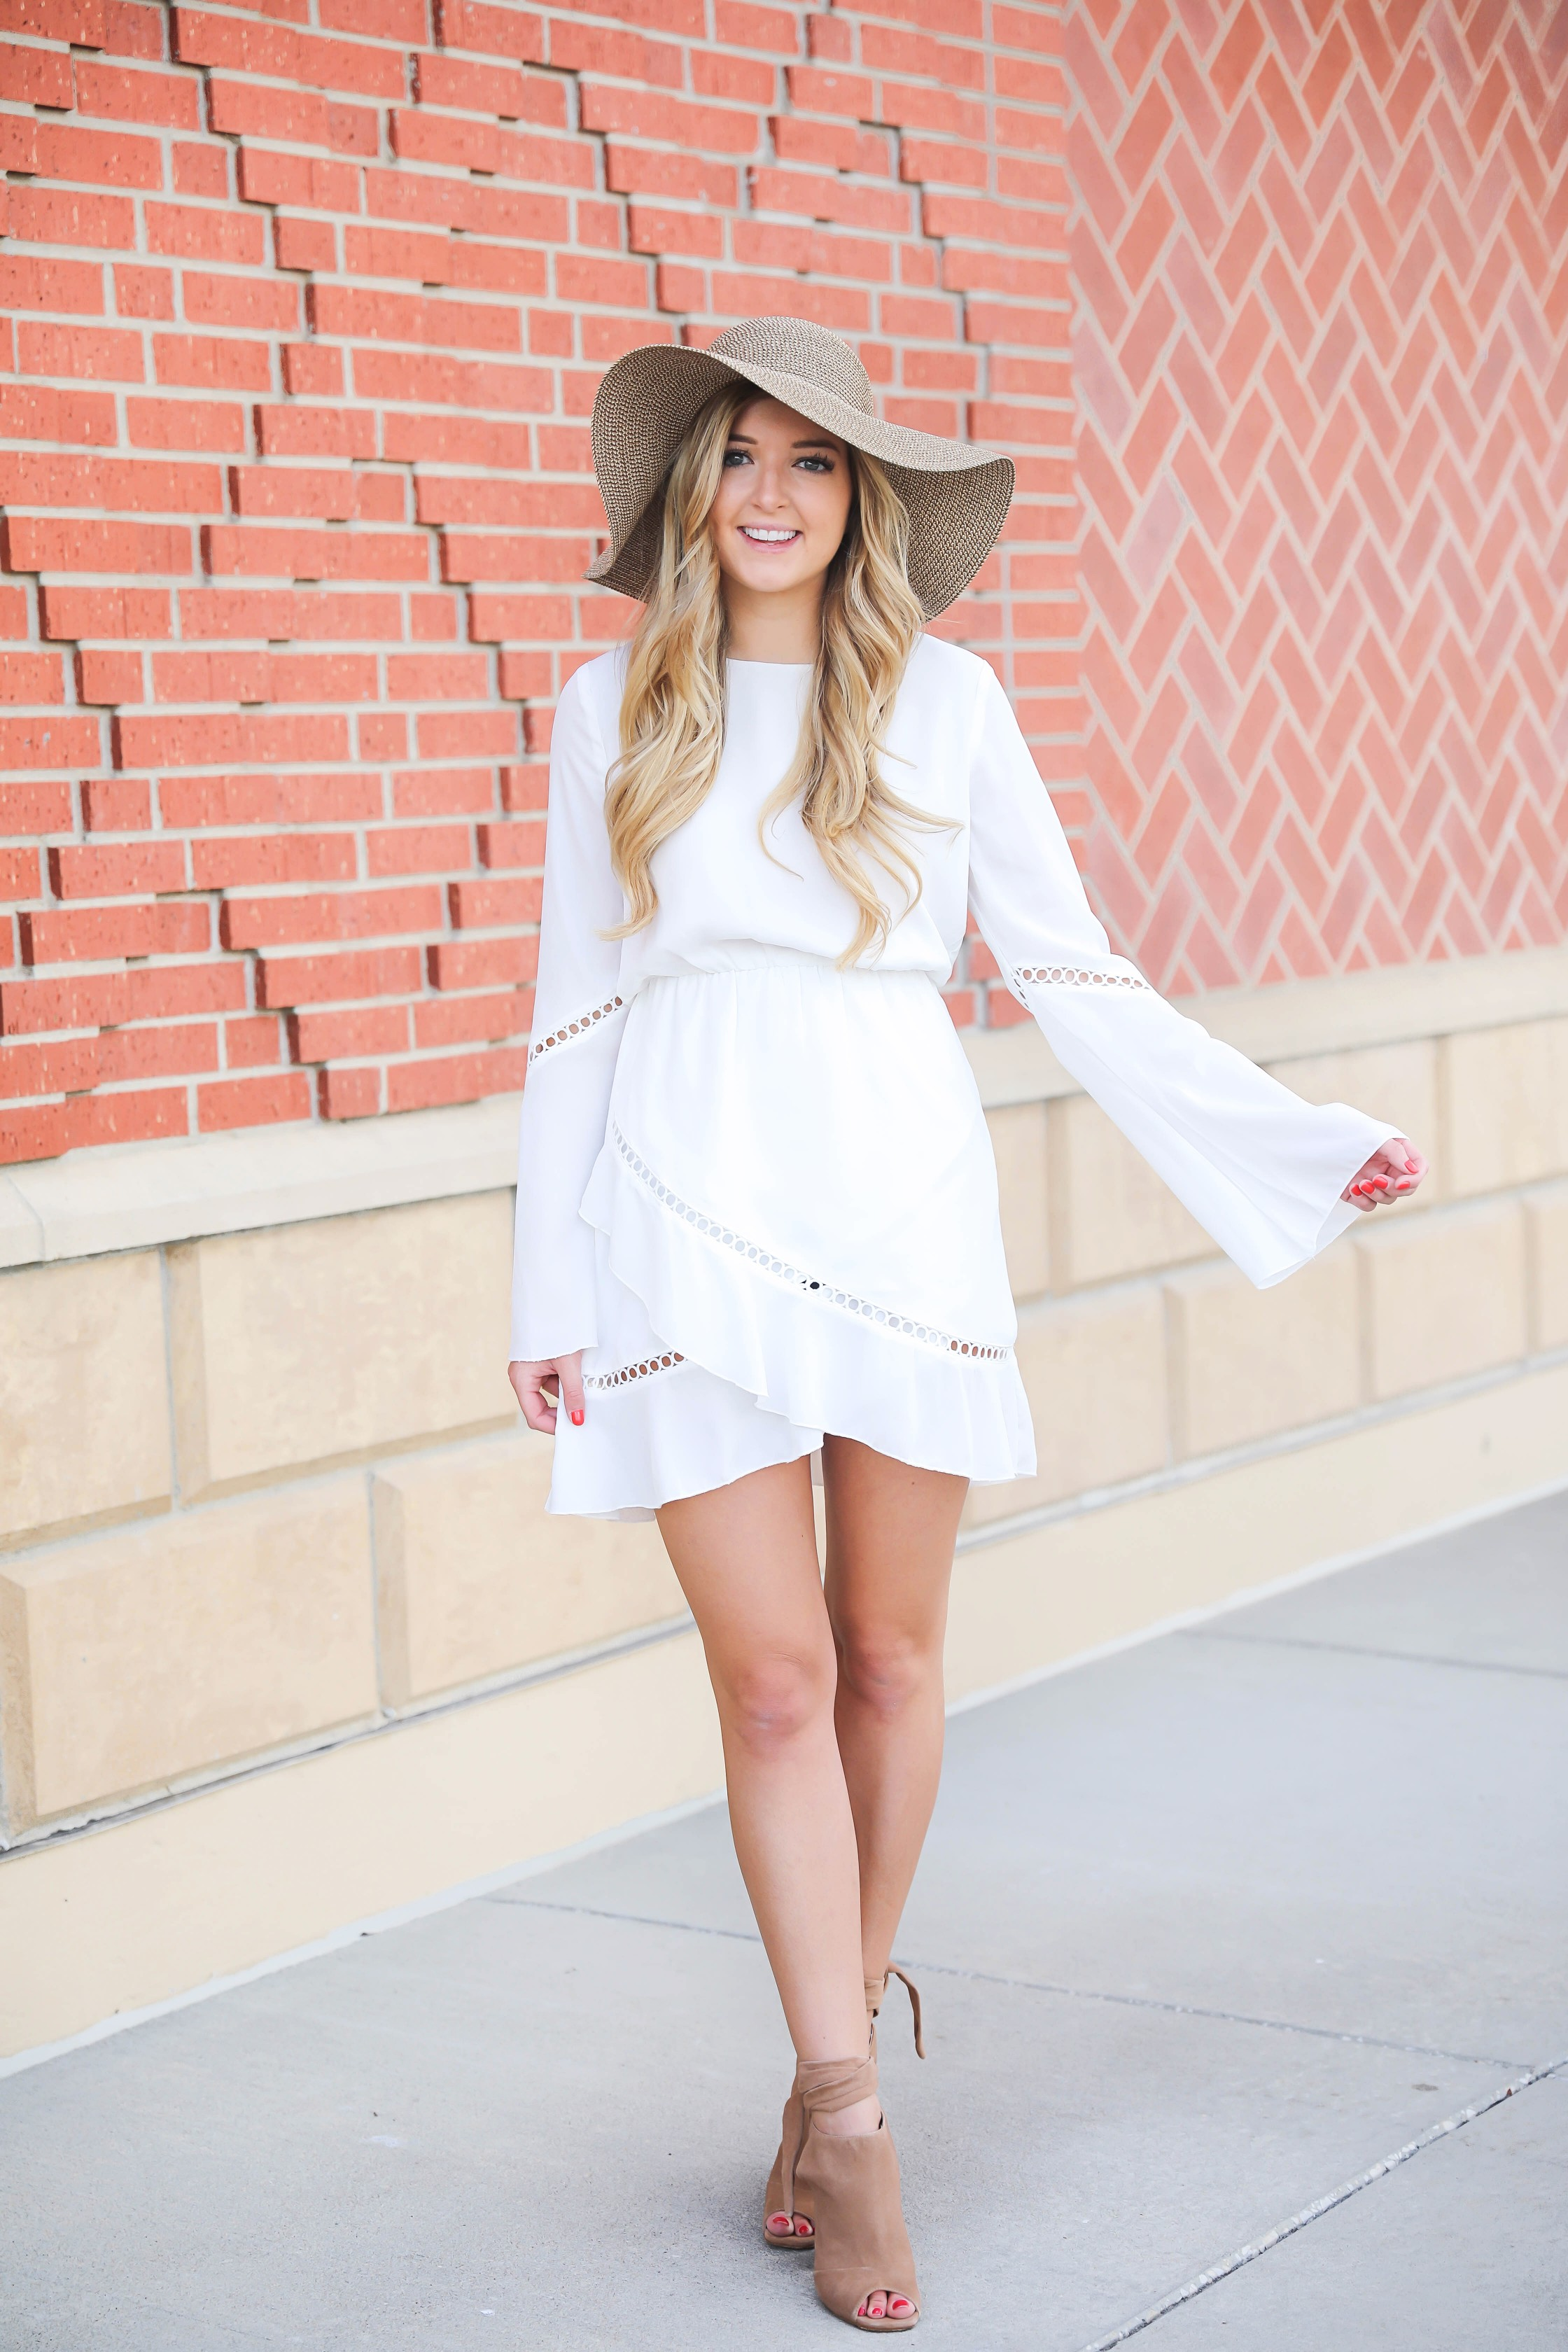 White dress roundup for sorority recruitment! During sorority recruitment a lot of girls have to wear white dresses, so I thought I would roundup some cute ones! These are also just cute dresses for summer! Details on fashion blog daily dose of charm by lauren lindmark